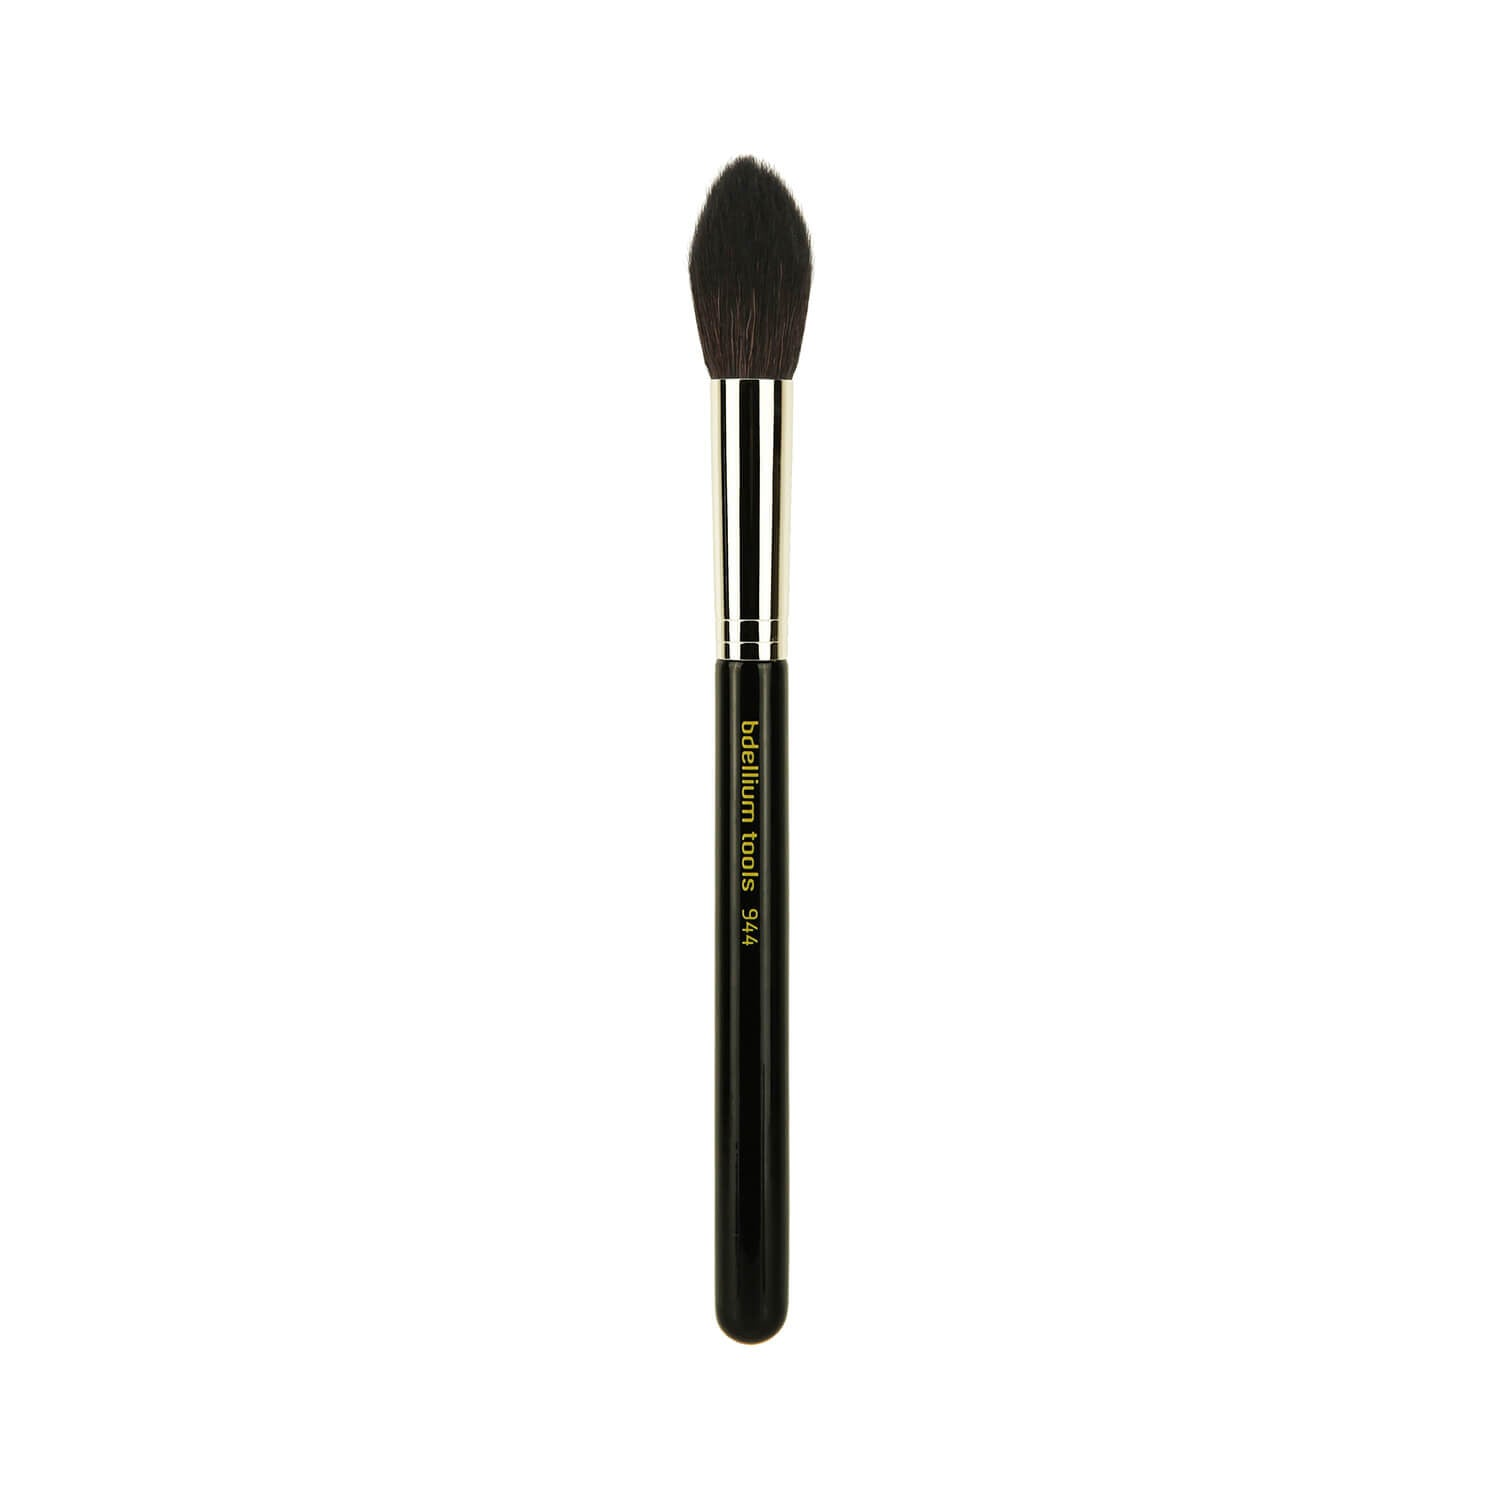 BDellium Tools Maestro Line 944 Tapered Contour Brush Black